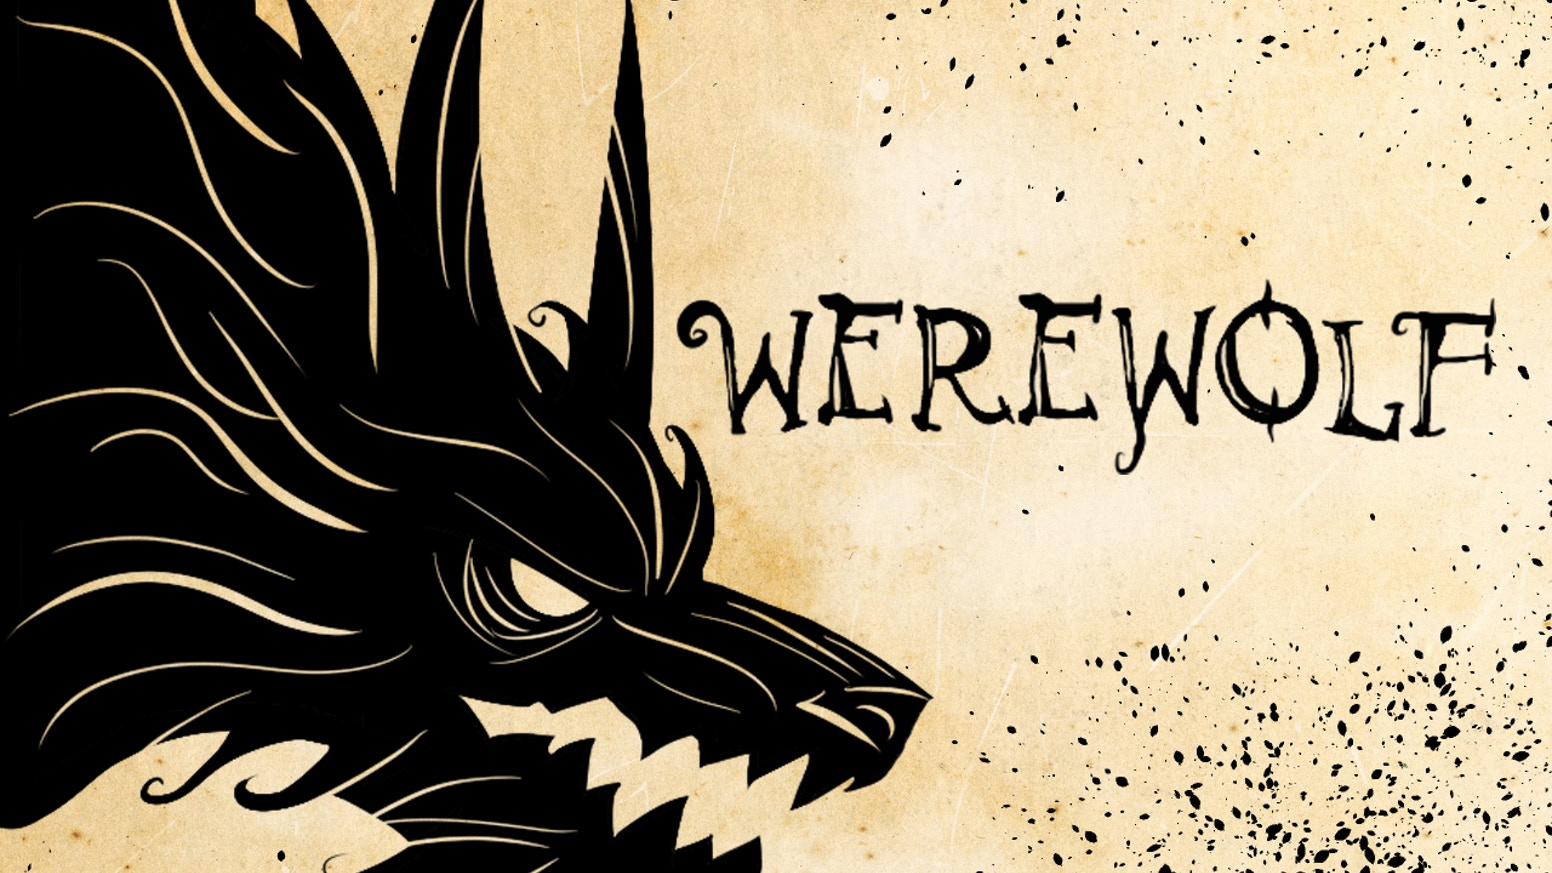 A great party game full of lying, secrets, mob mentality, and.....um.....oh yeah, werewolves.